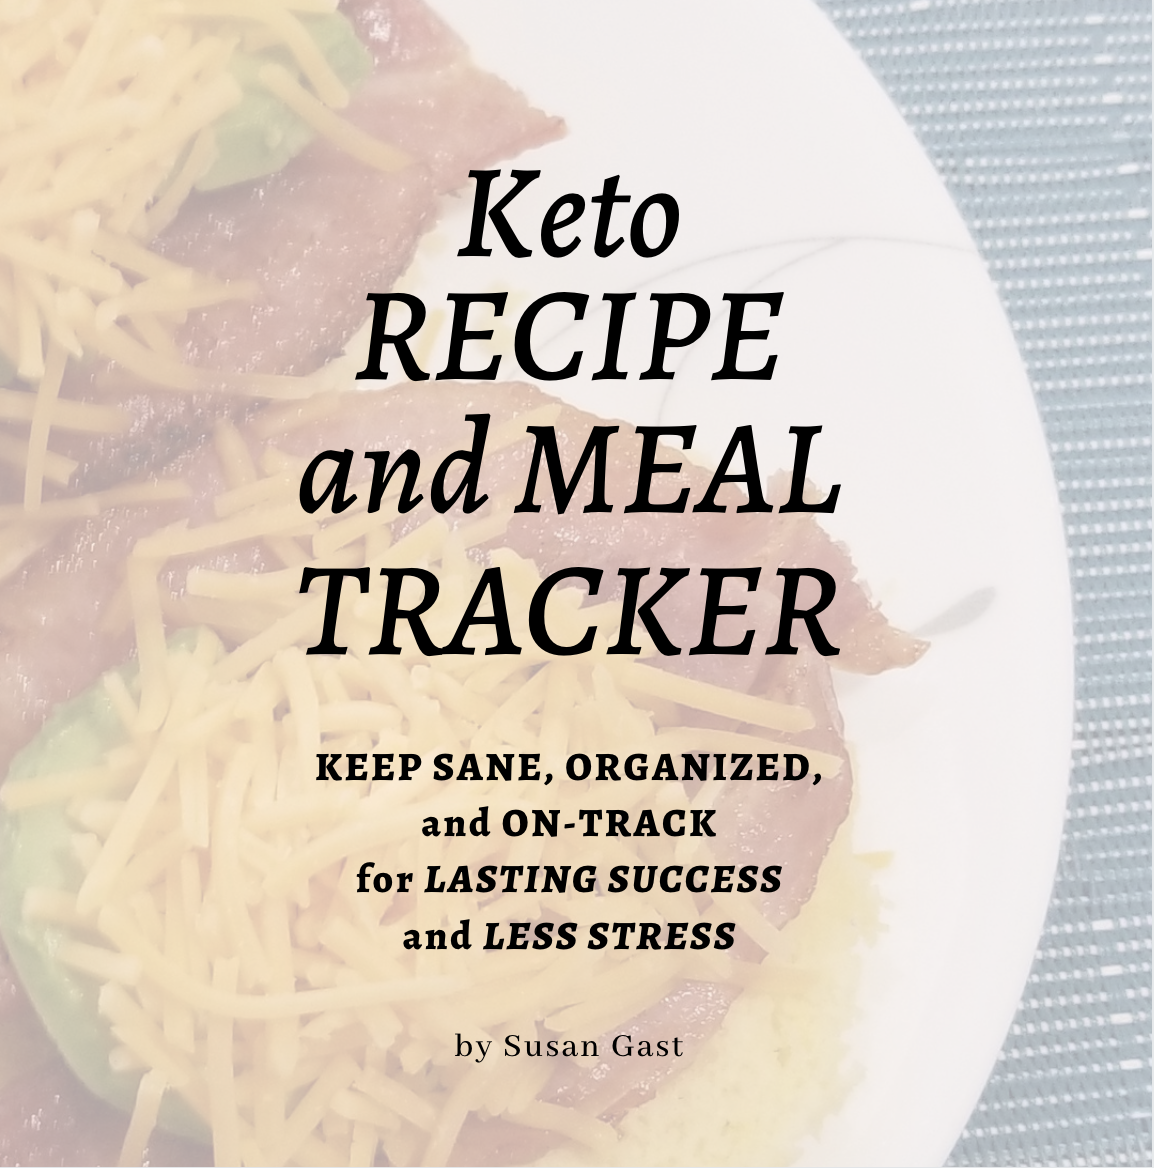 Keto Recipe and Meal Tracker front cover